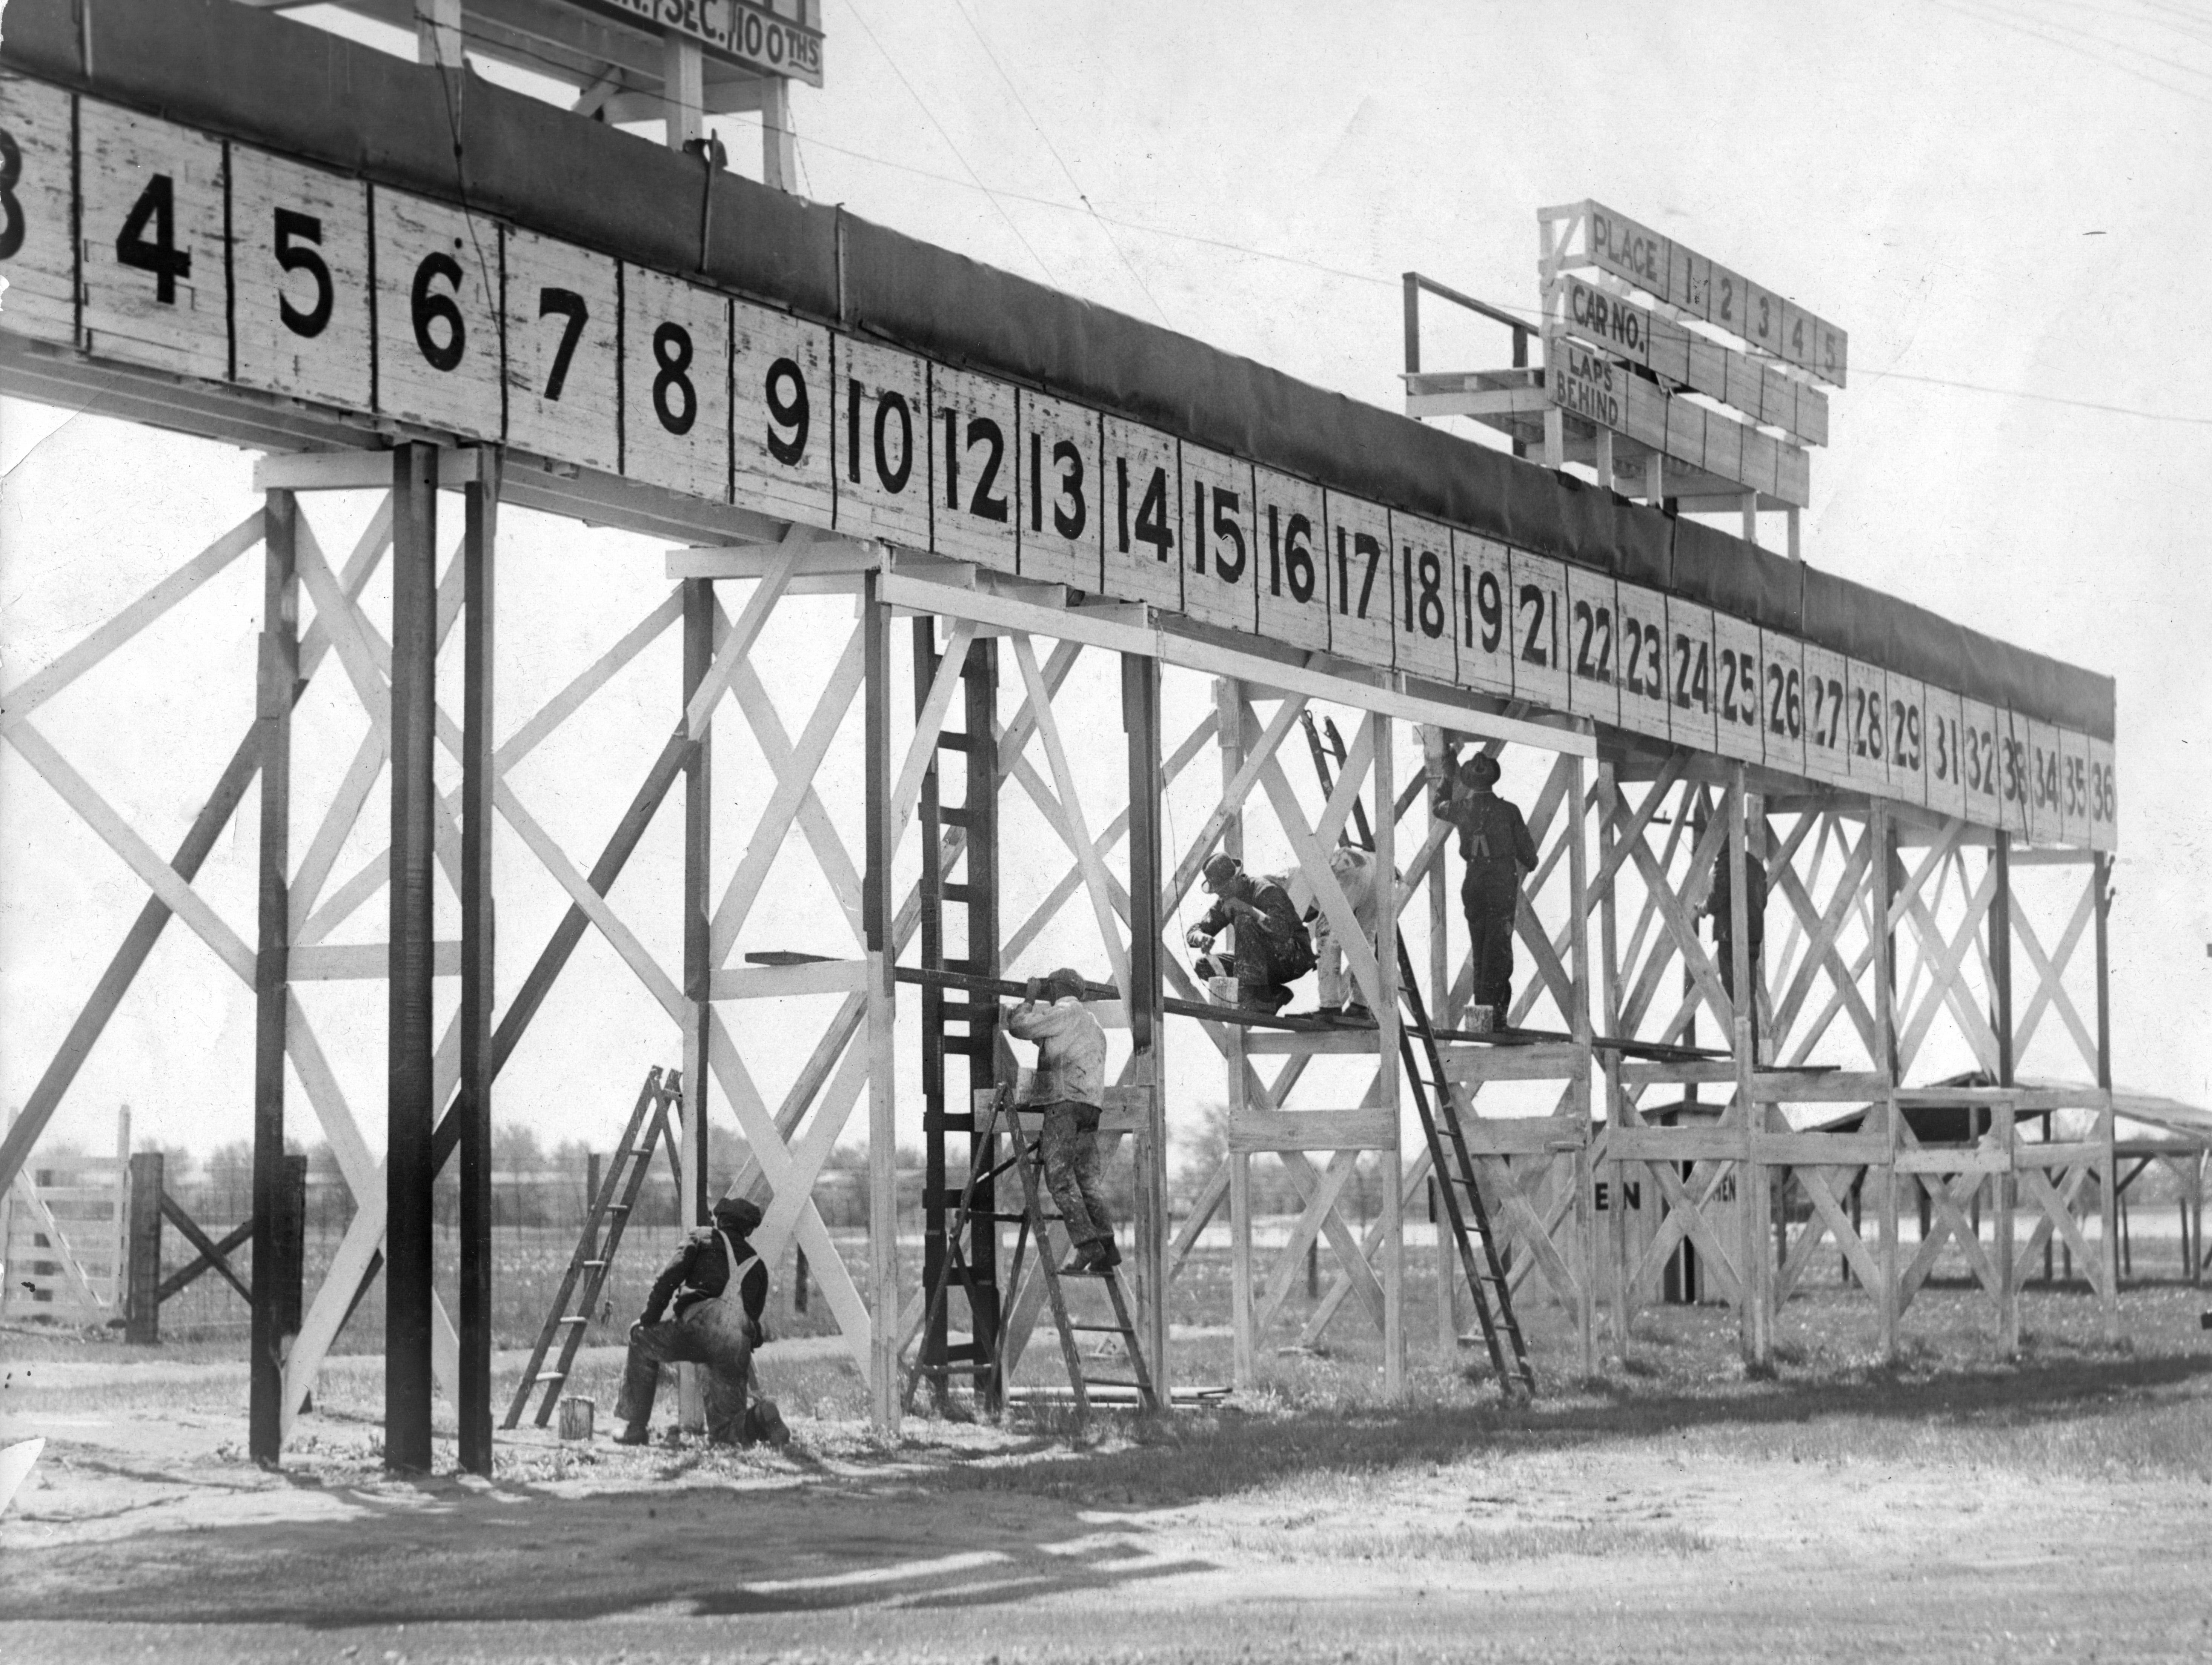 A crew of painters at the Indianapolis Motor Speedway brightened up the scoreboard behind the pits with a new coat of paint prior to the 1929 race.